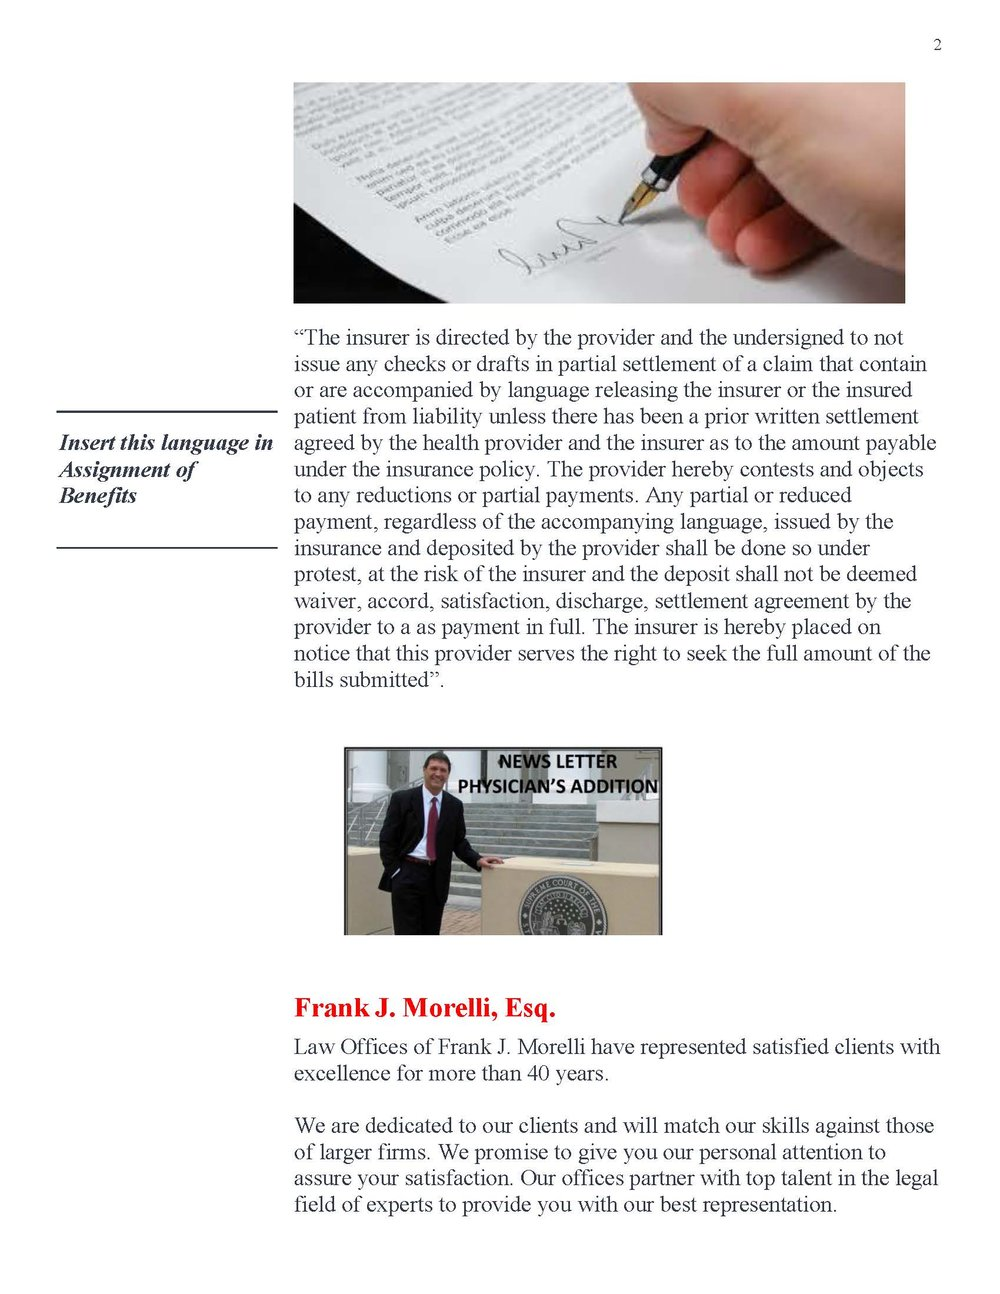 NEWSLETTER PHYSICIANS ISSUE_Page_2.jpg